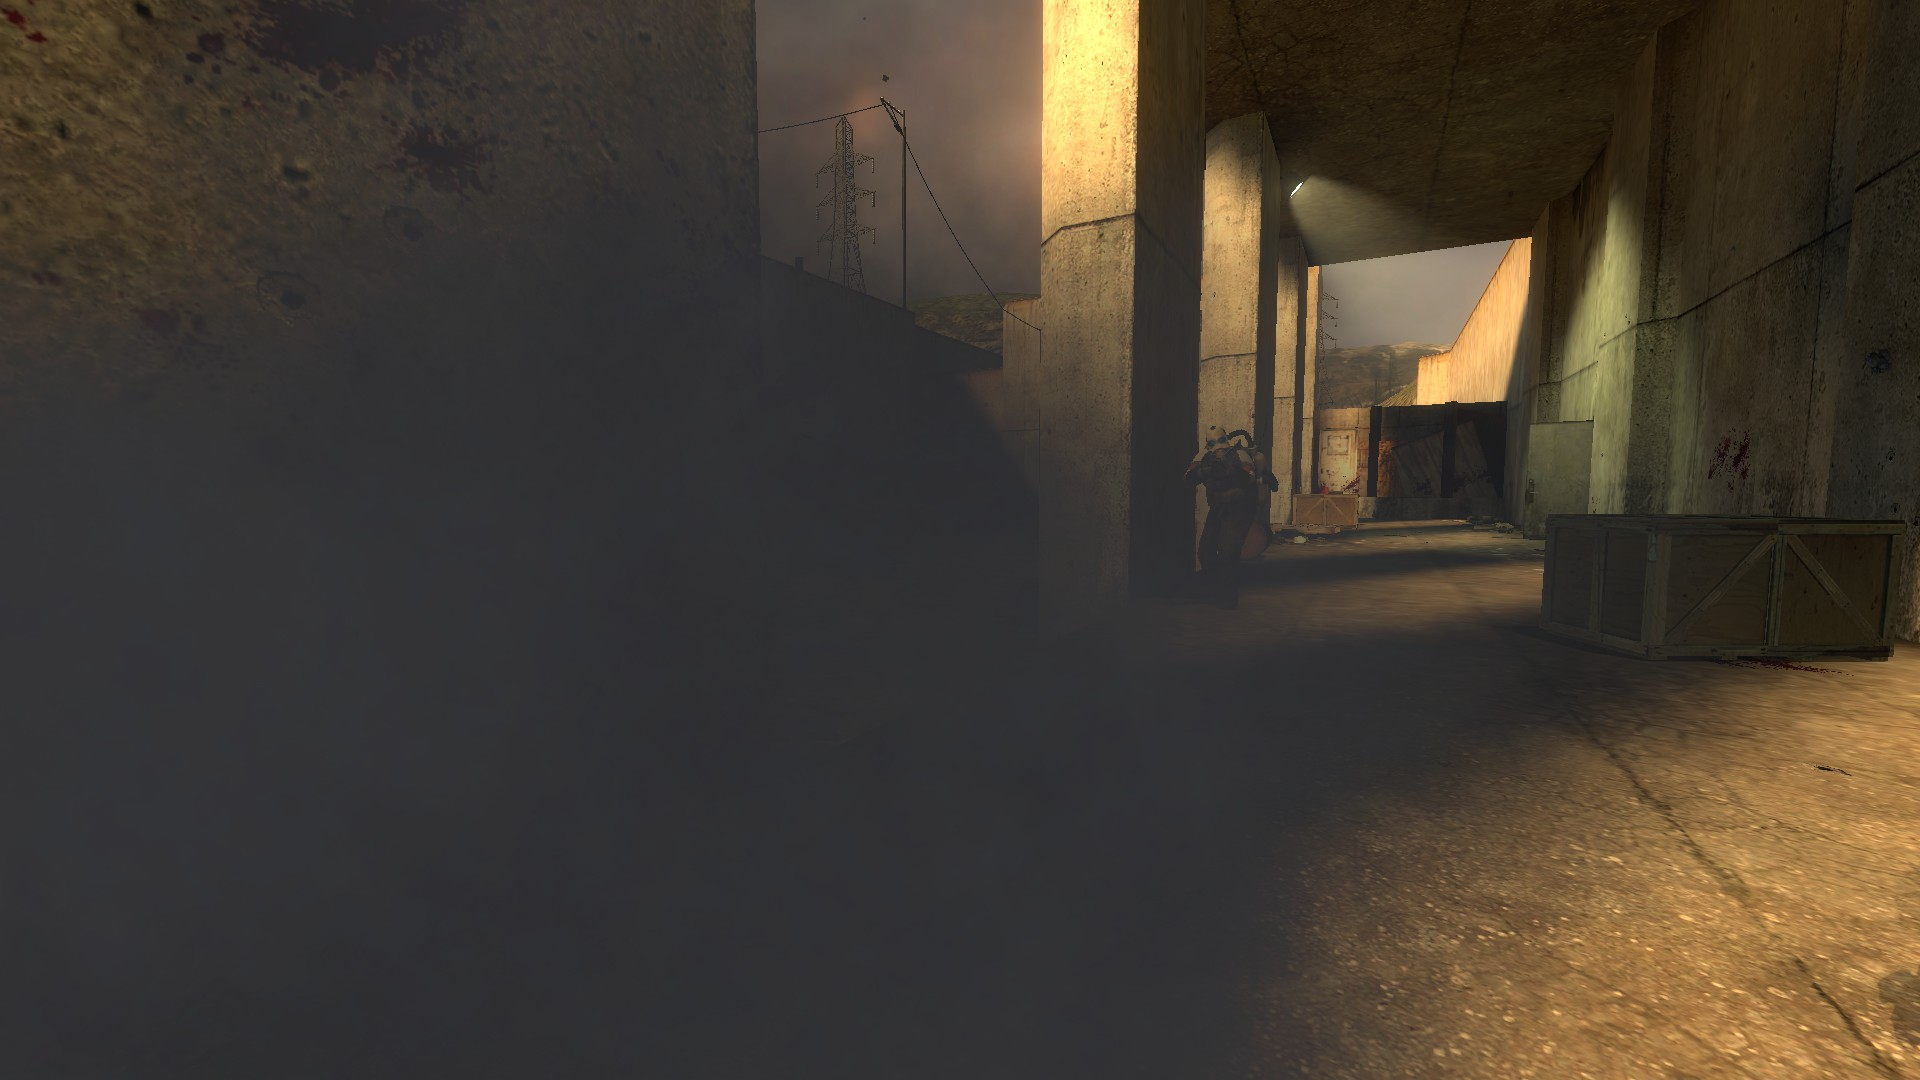 Industrial Zone Smoke Grenade